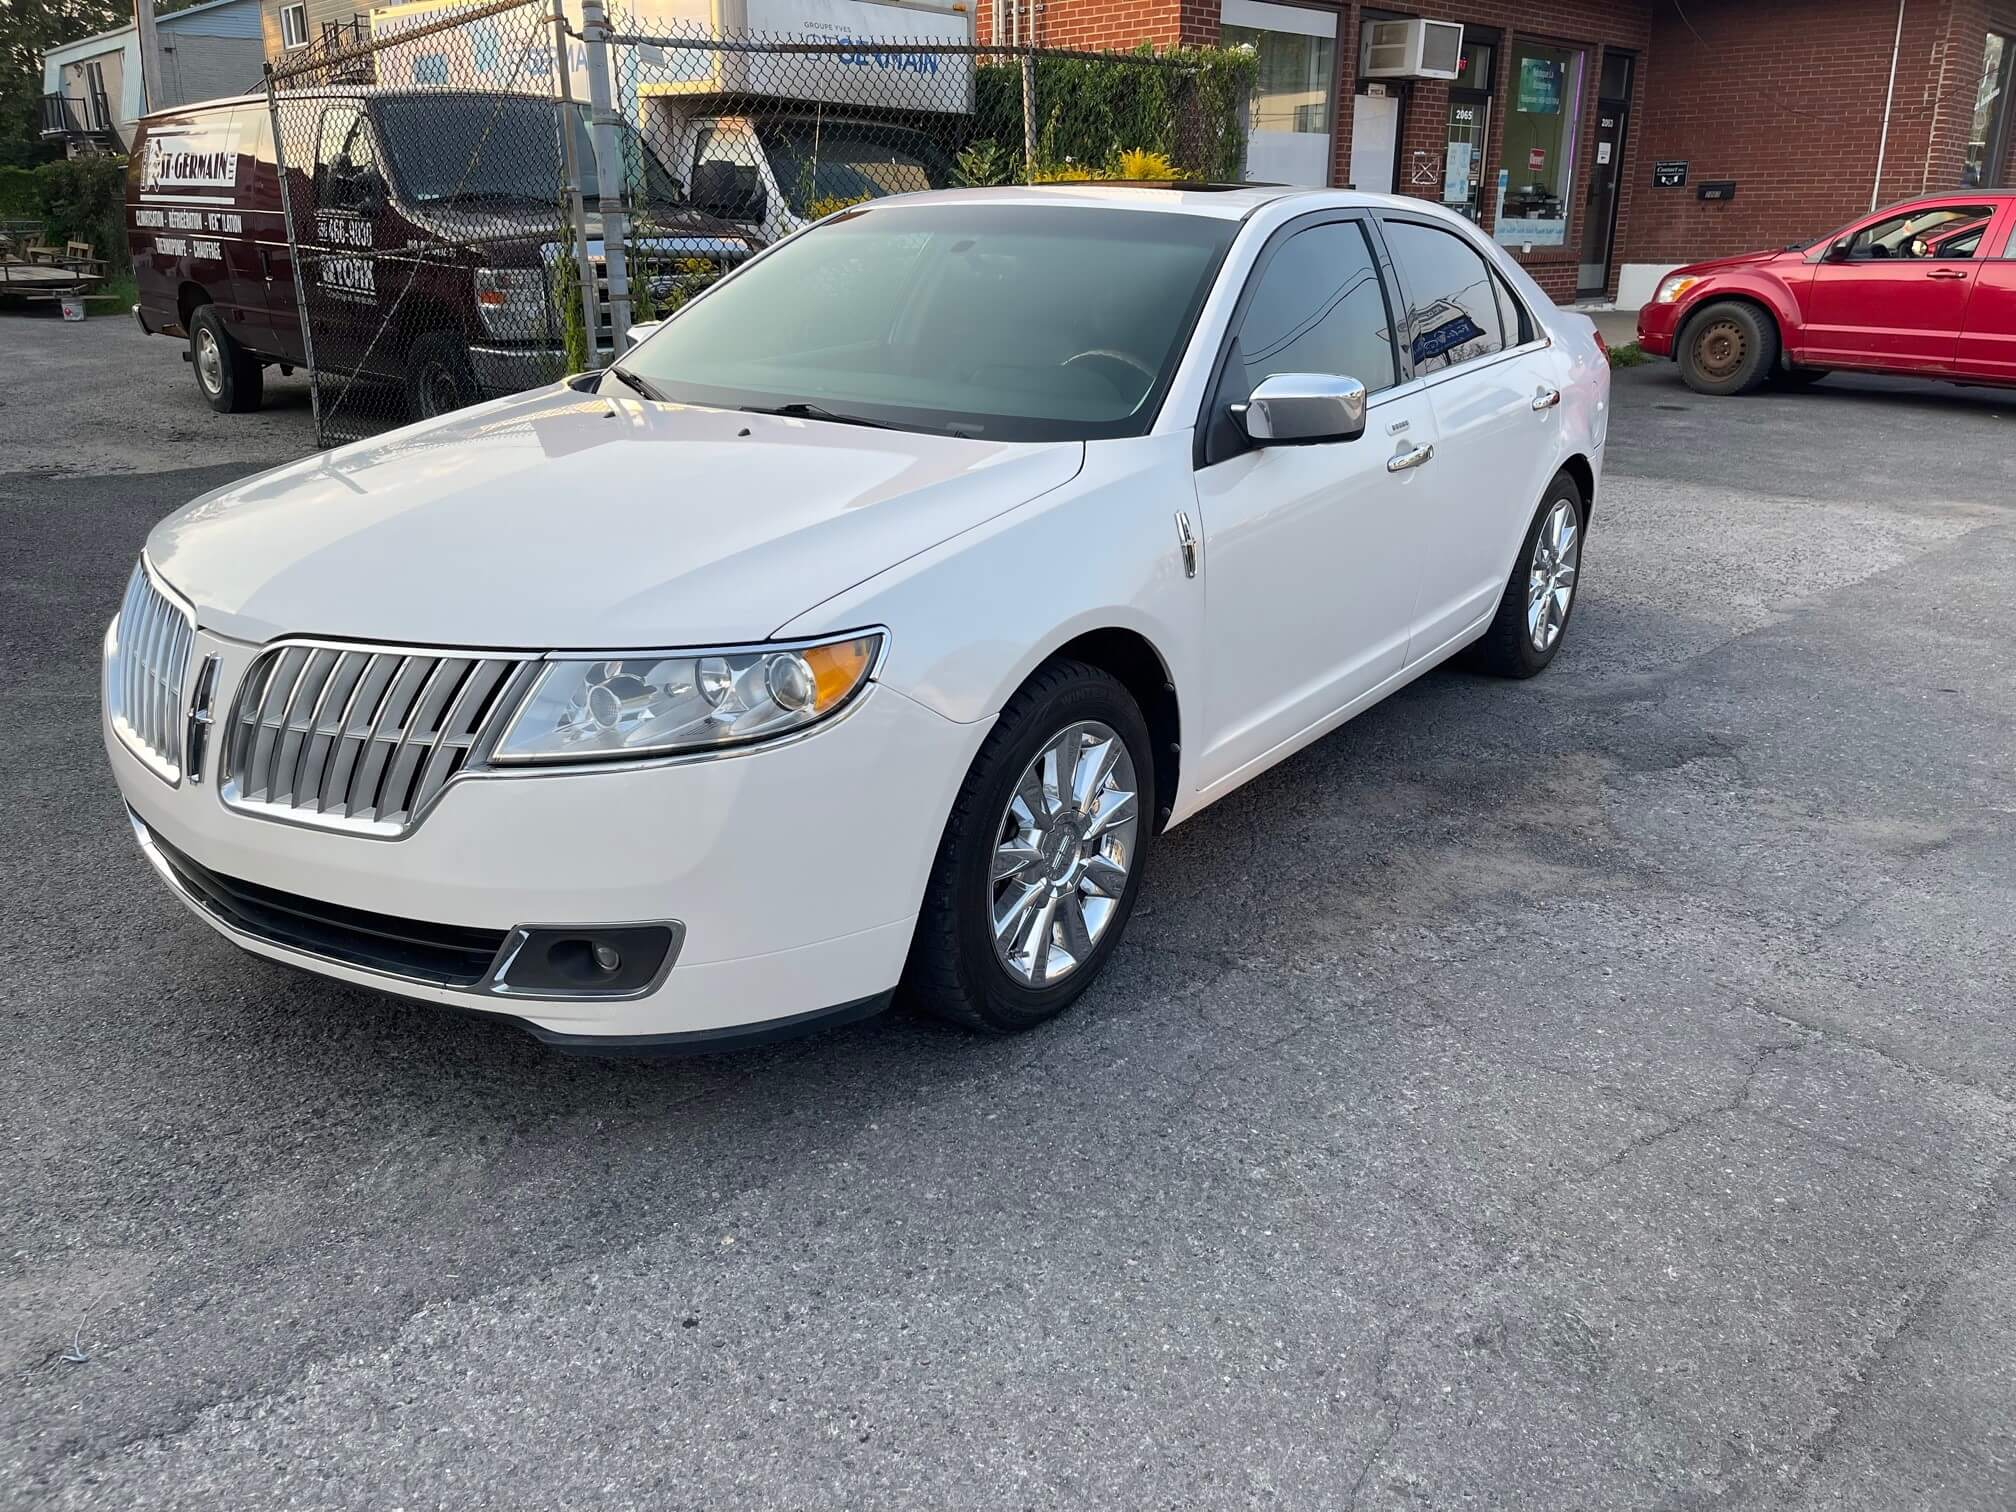 2012 Lincoln MKZ complet